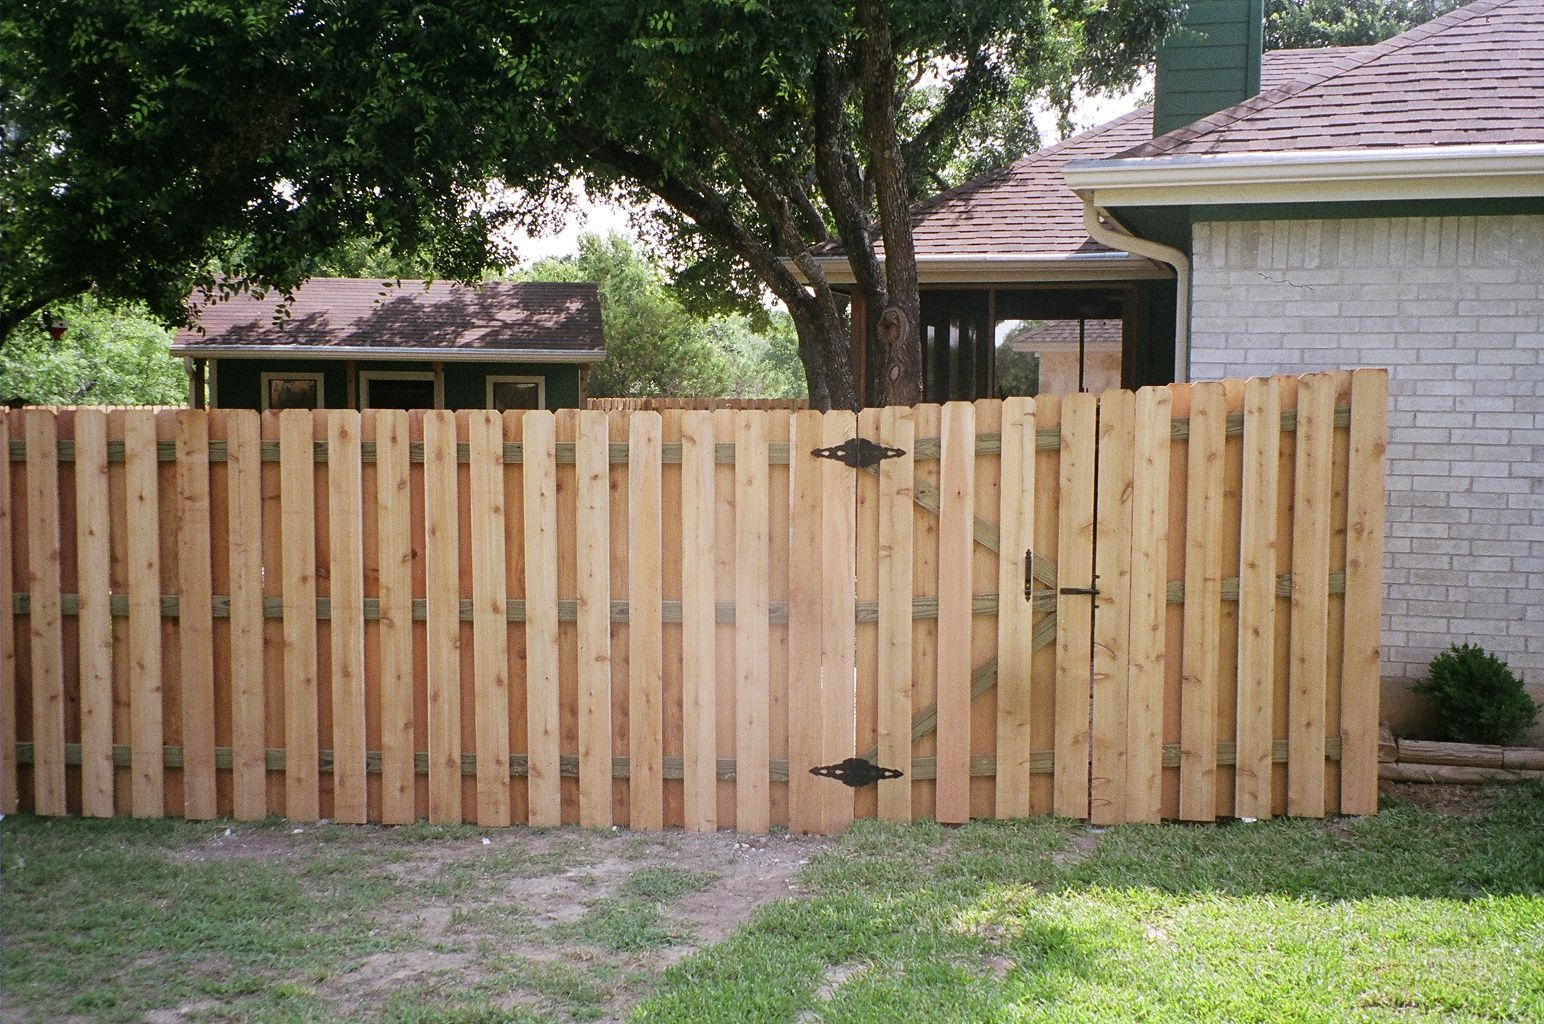 Driveway-Wood-Fence-Gate-Design-Ideas | KITCHENTODAY | Home ...